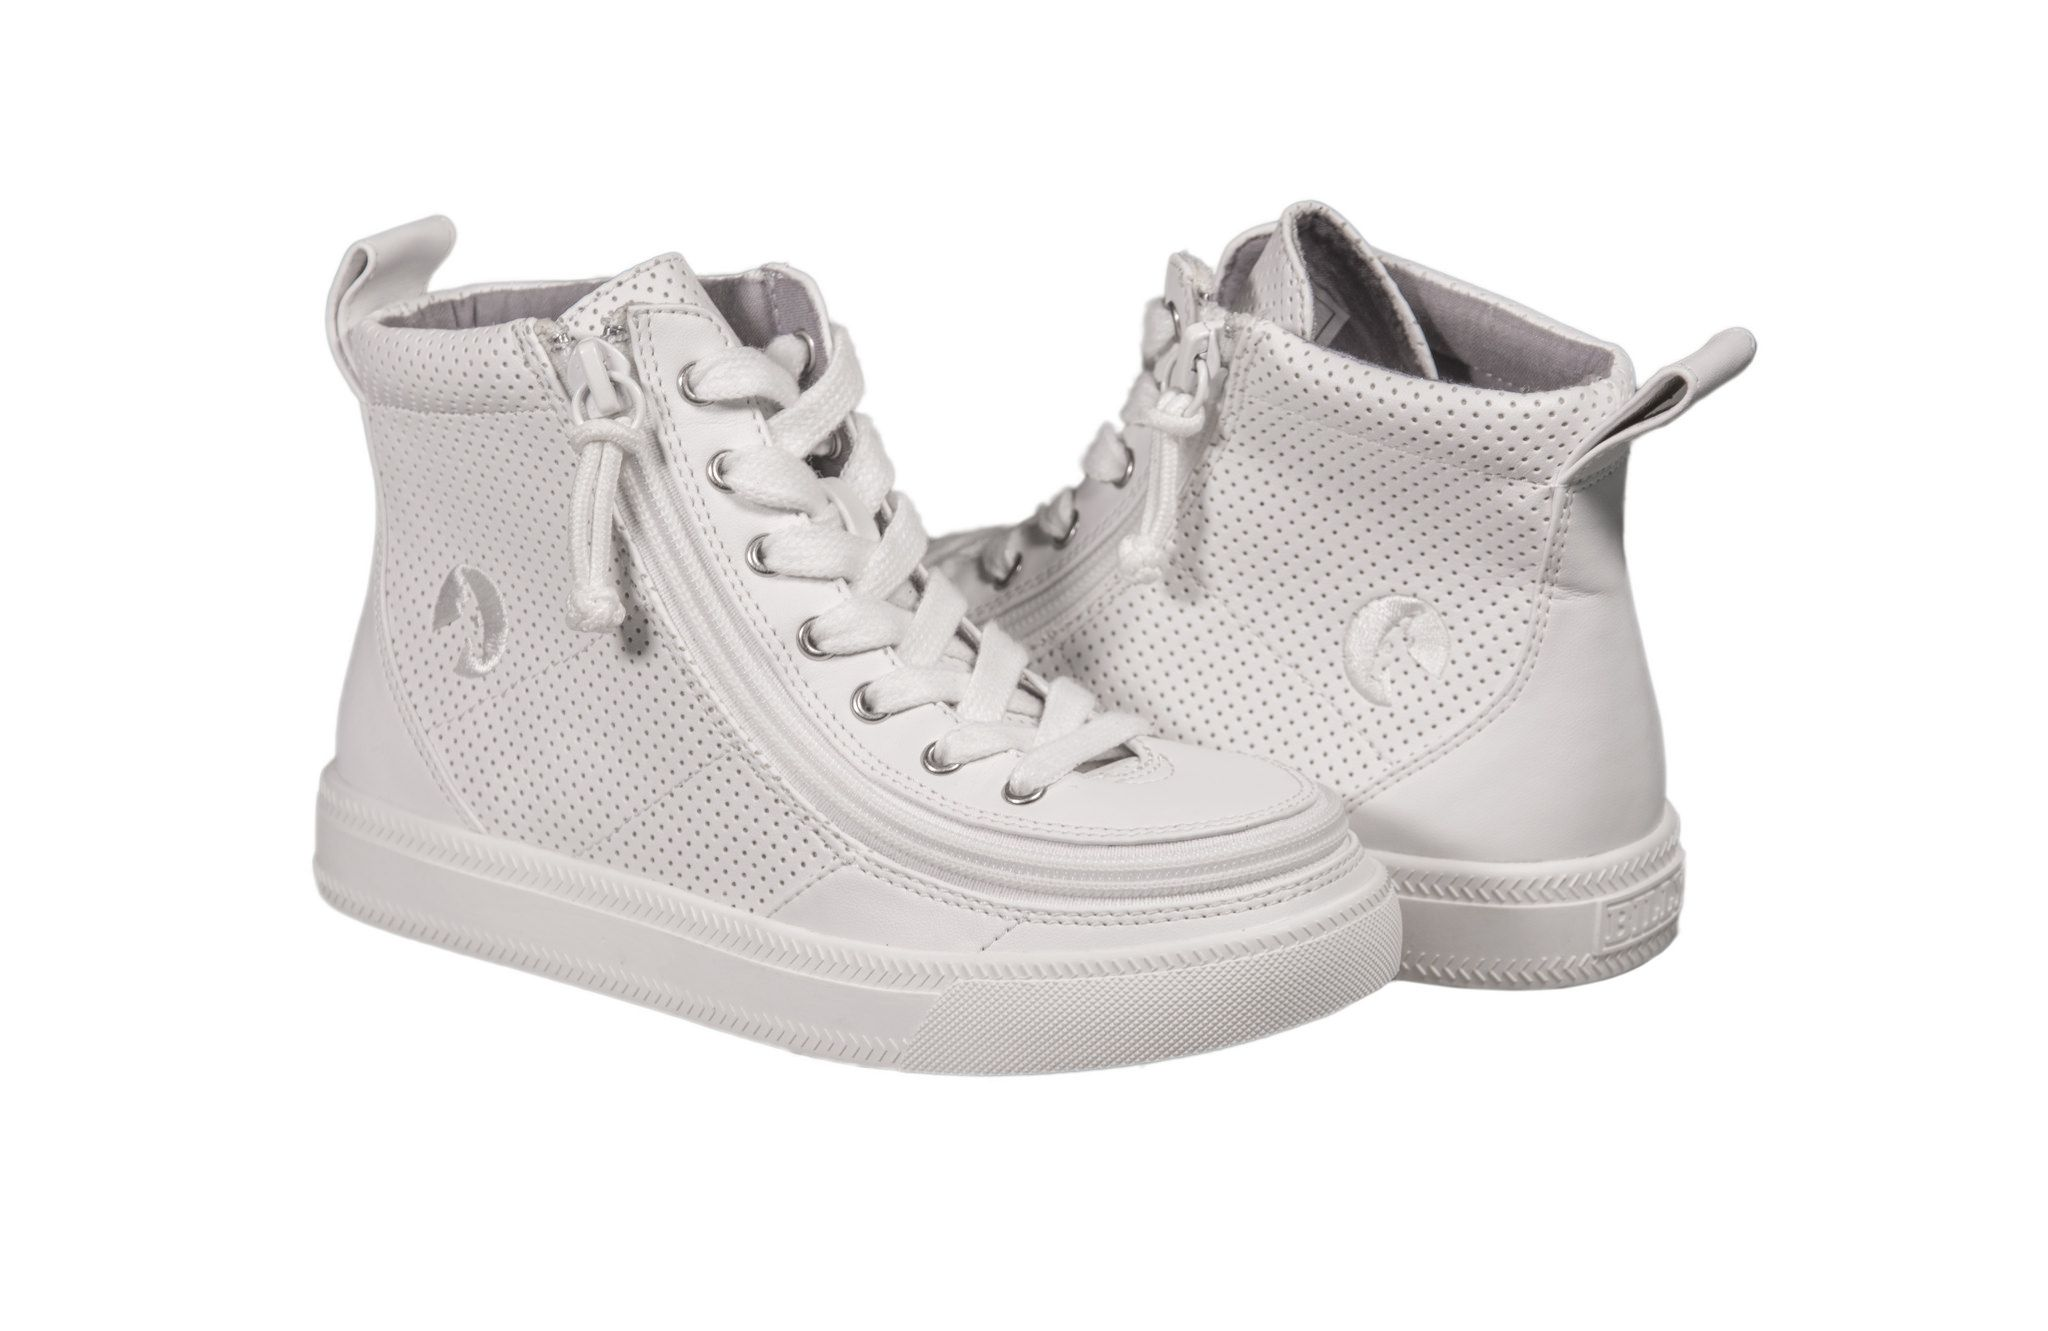 60f75f2f7b9 The BILLY Classic High (White Perf) features innovative FlipTop™  technology